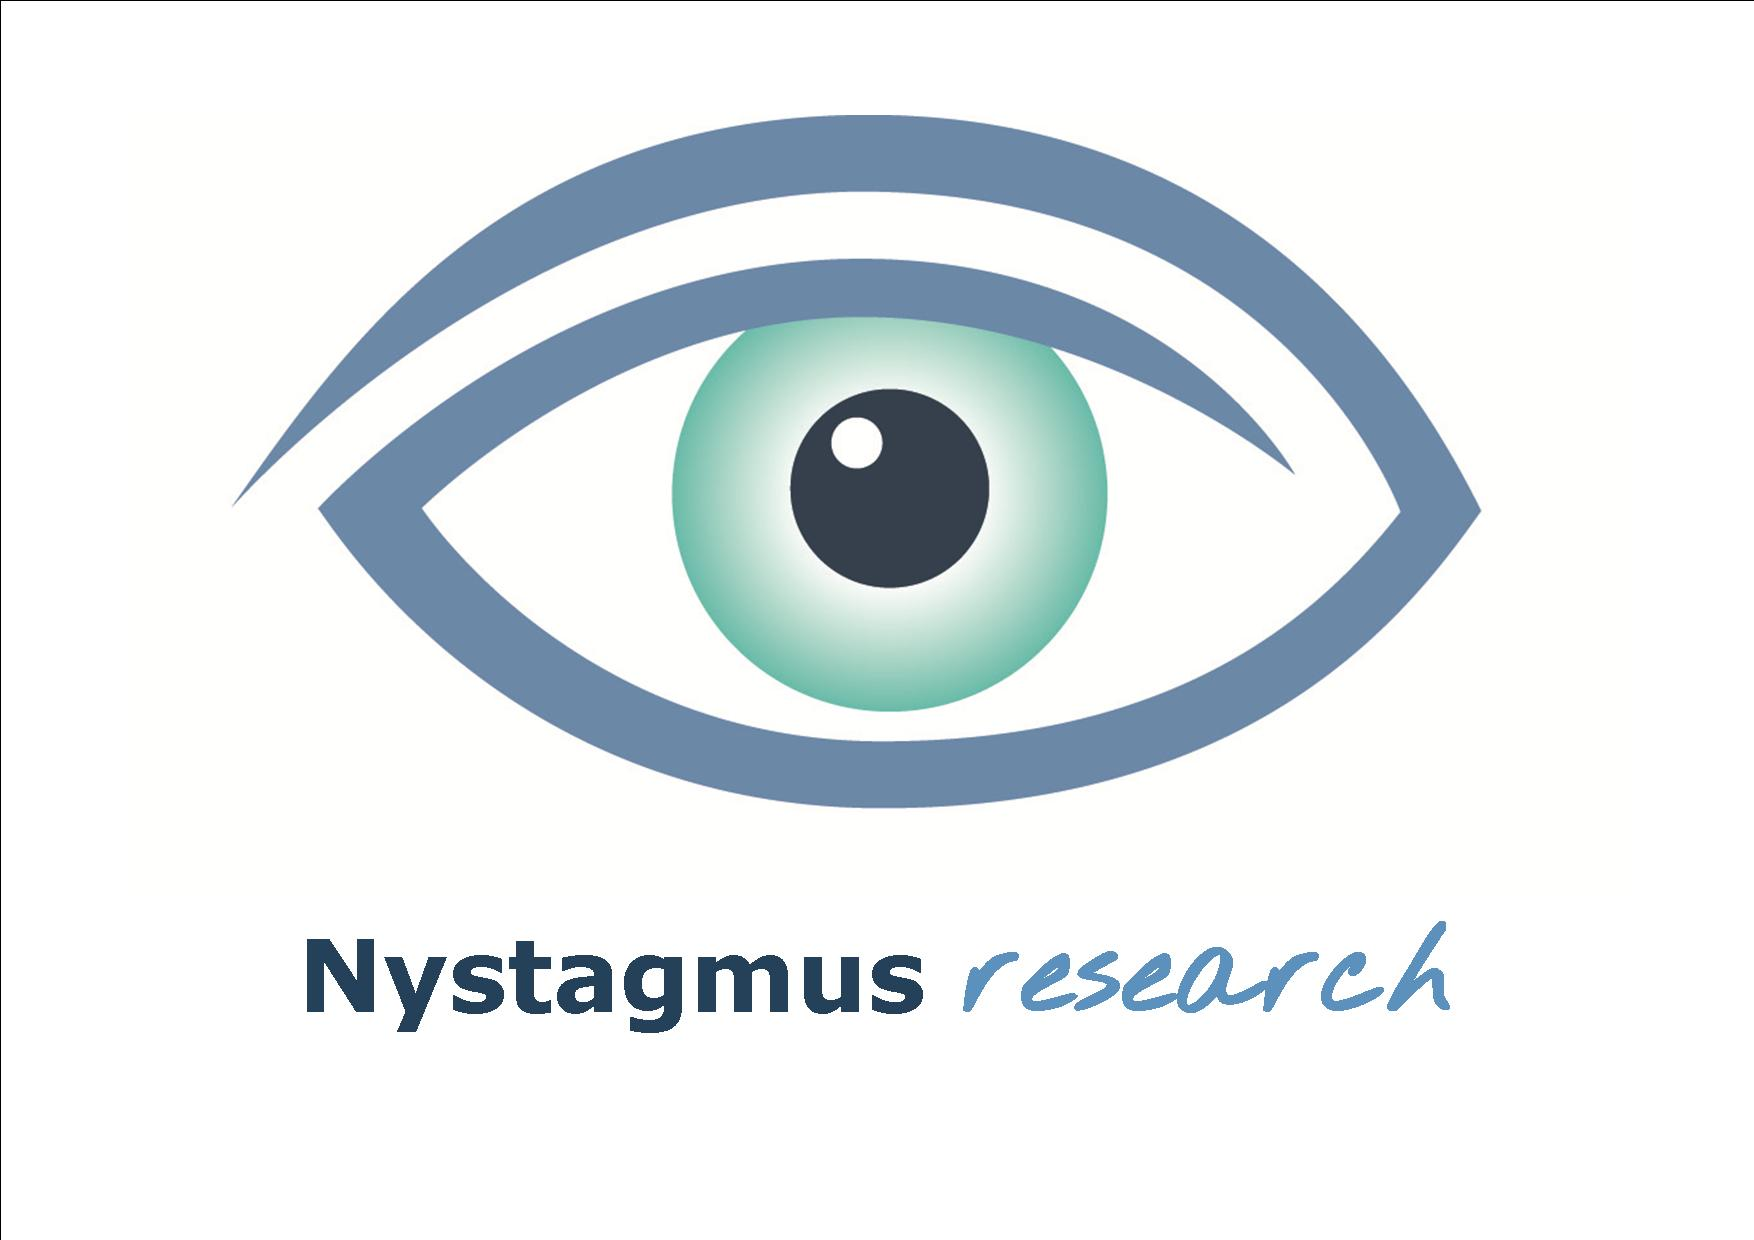 Your nystagmus research questions answered – question 3